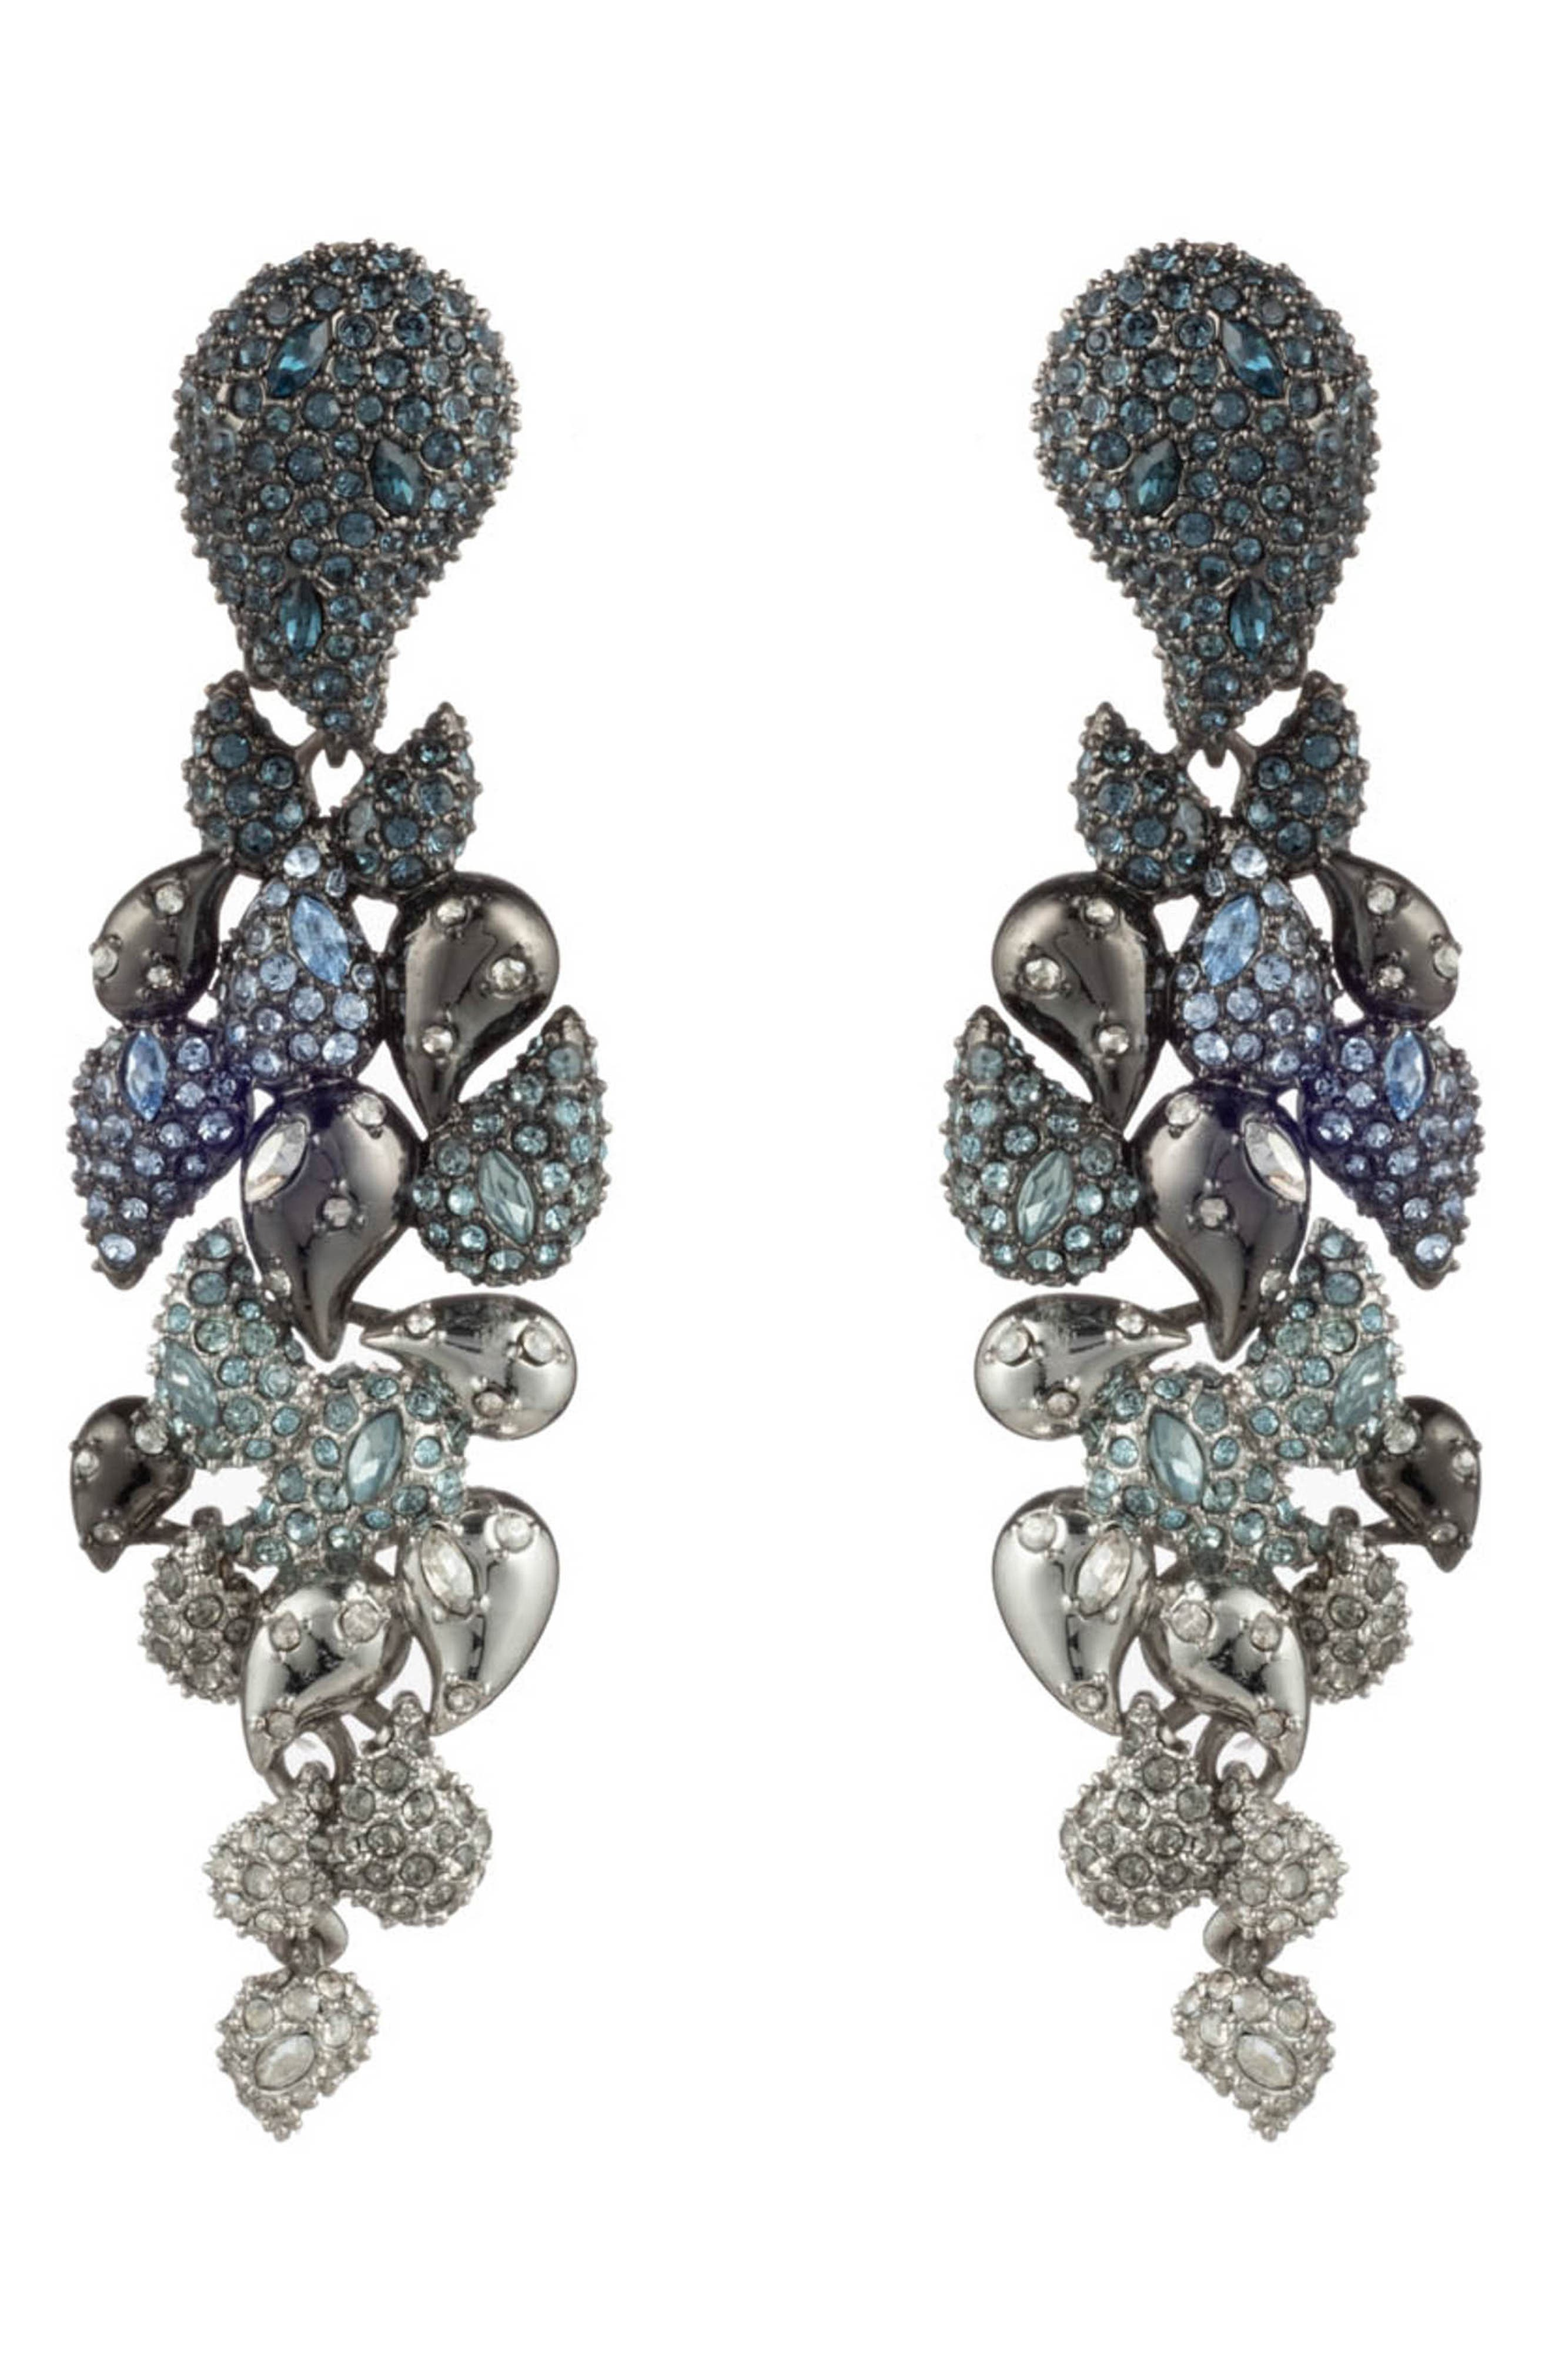 ALEXIS BITTAR Winter Paisley Crystal Encrusted Ombre Statement Clip Earrings in Blue